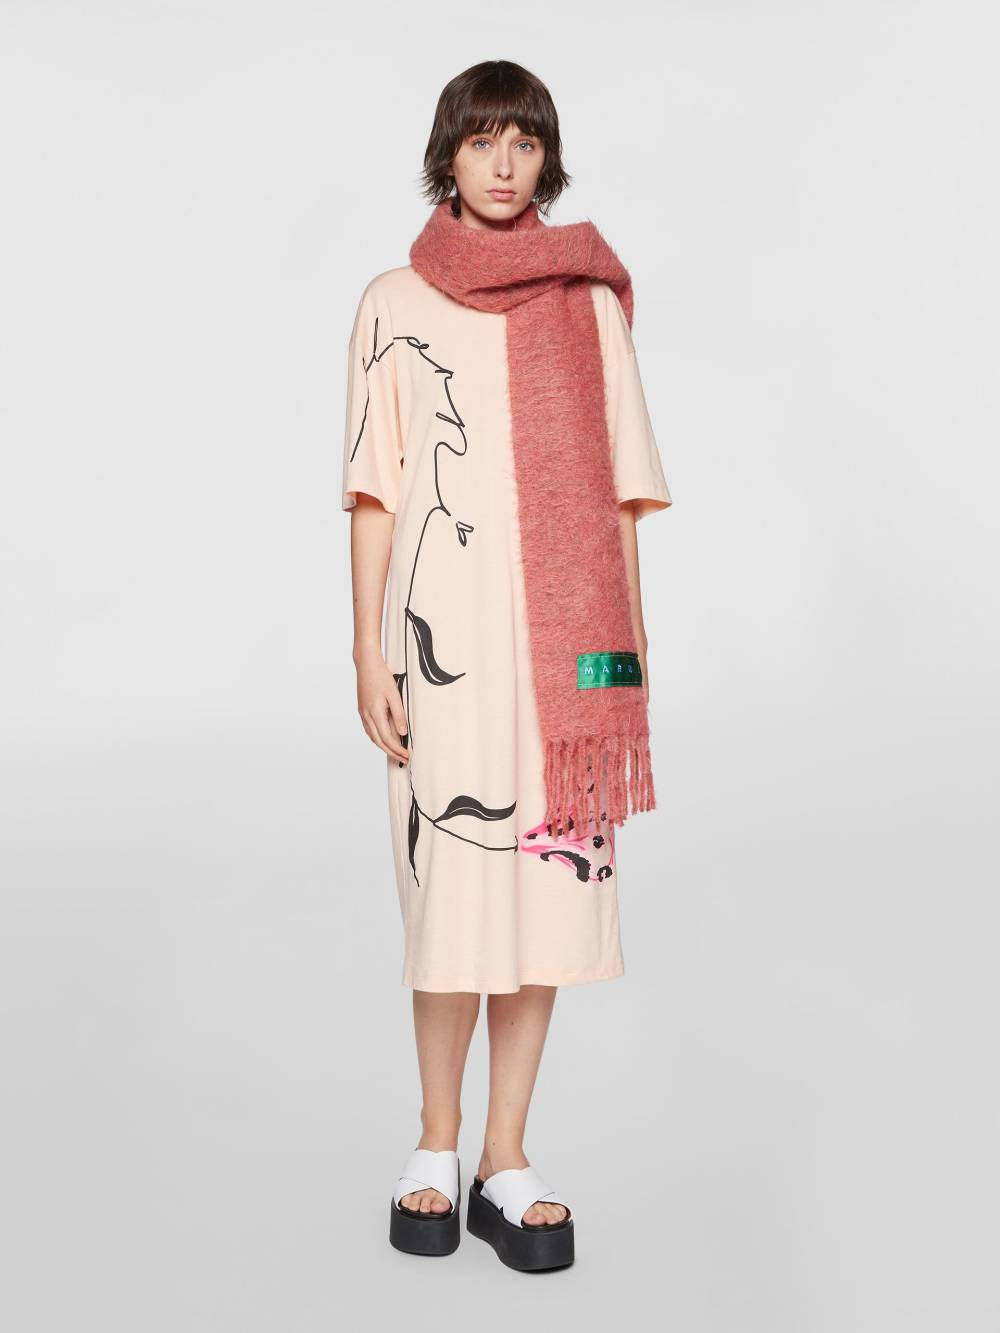 marni sustainable affordable italian clothing